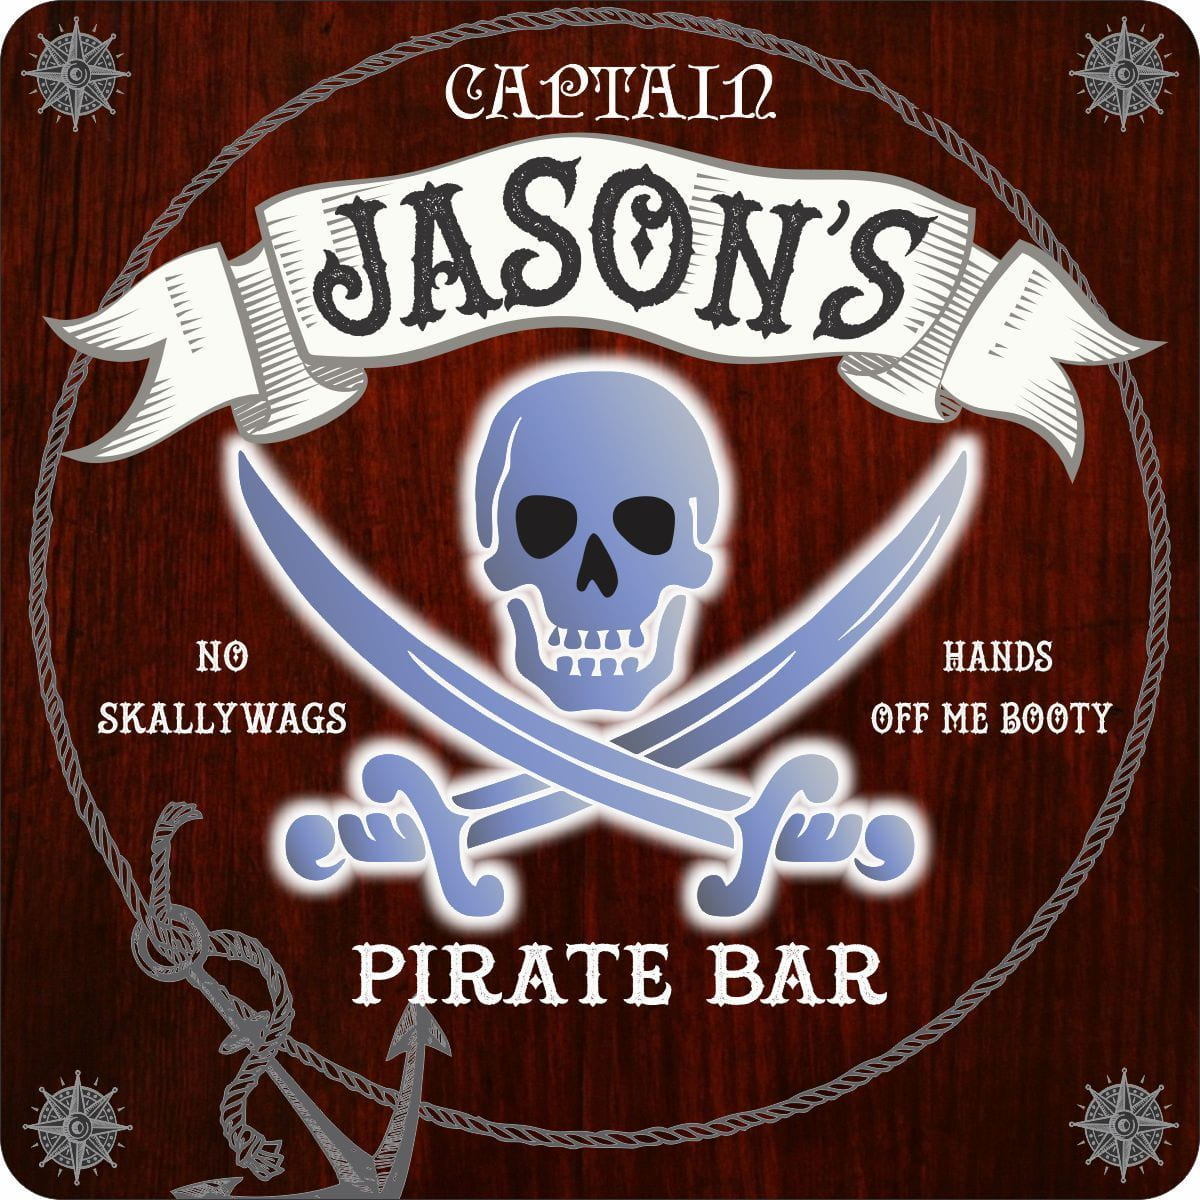 Custom Pirate Home Bar Sign With Neon Effect Skull And Crossbones Choice Of Background